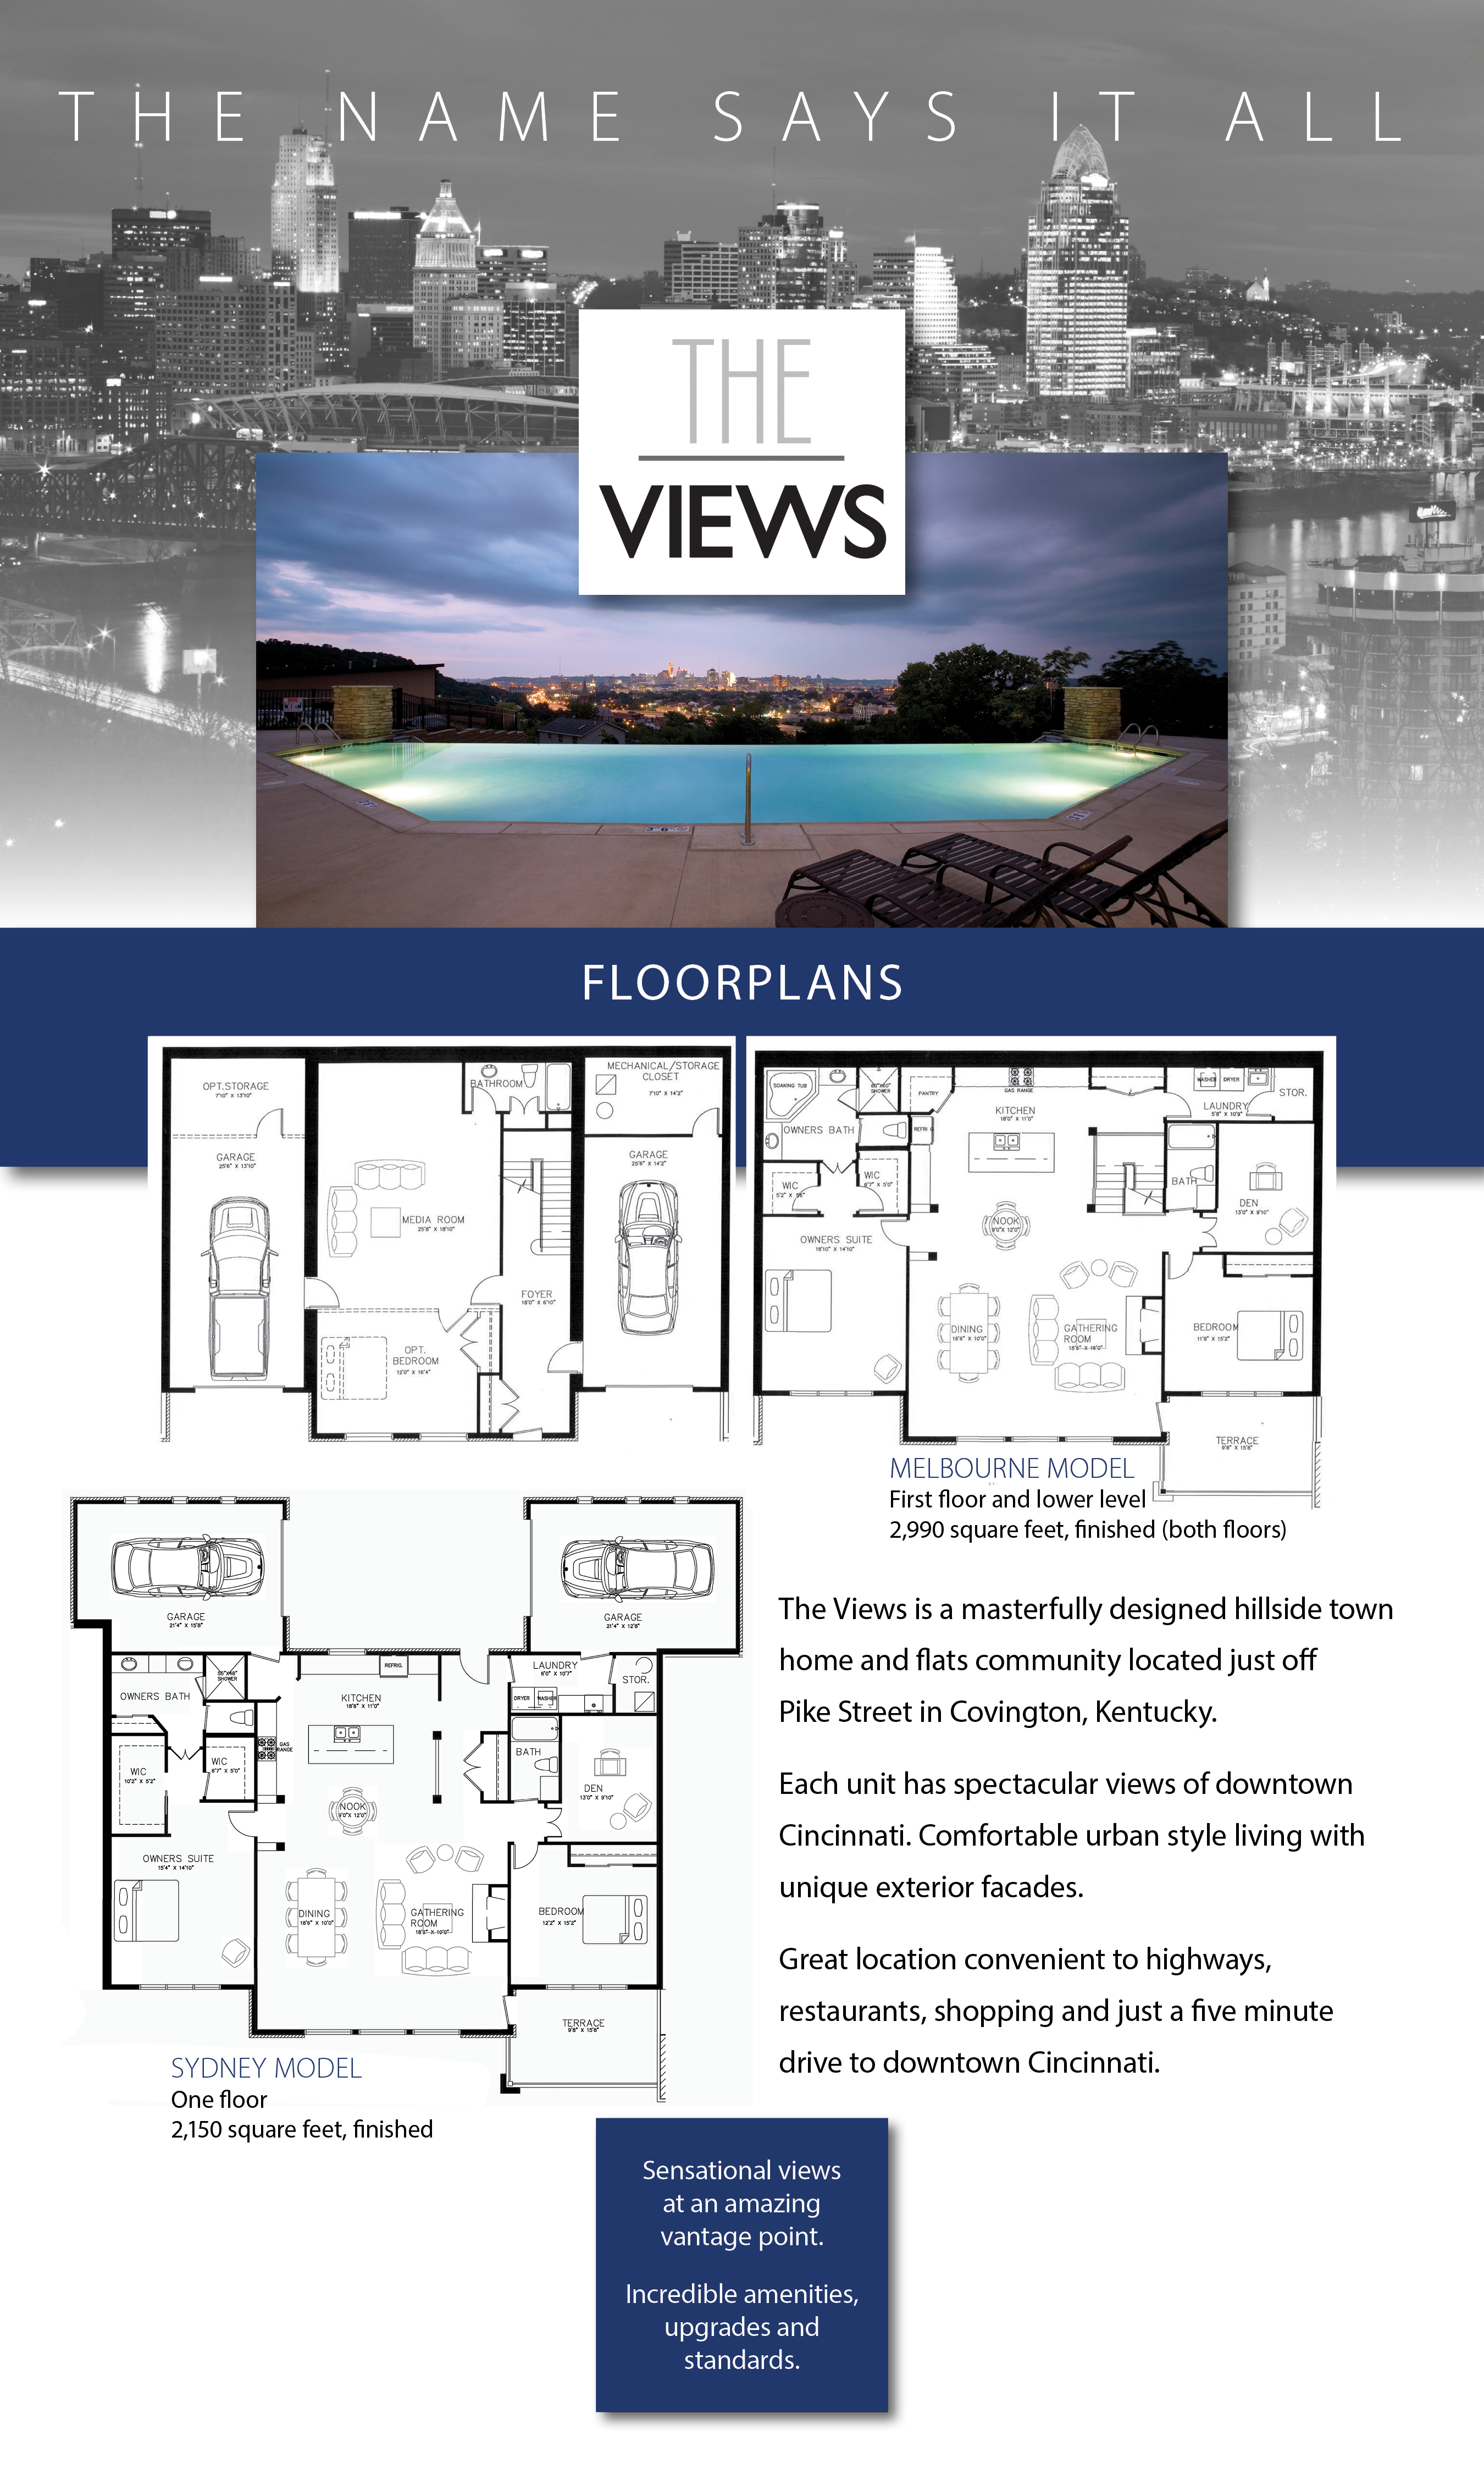 The Views Floorplans